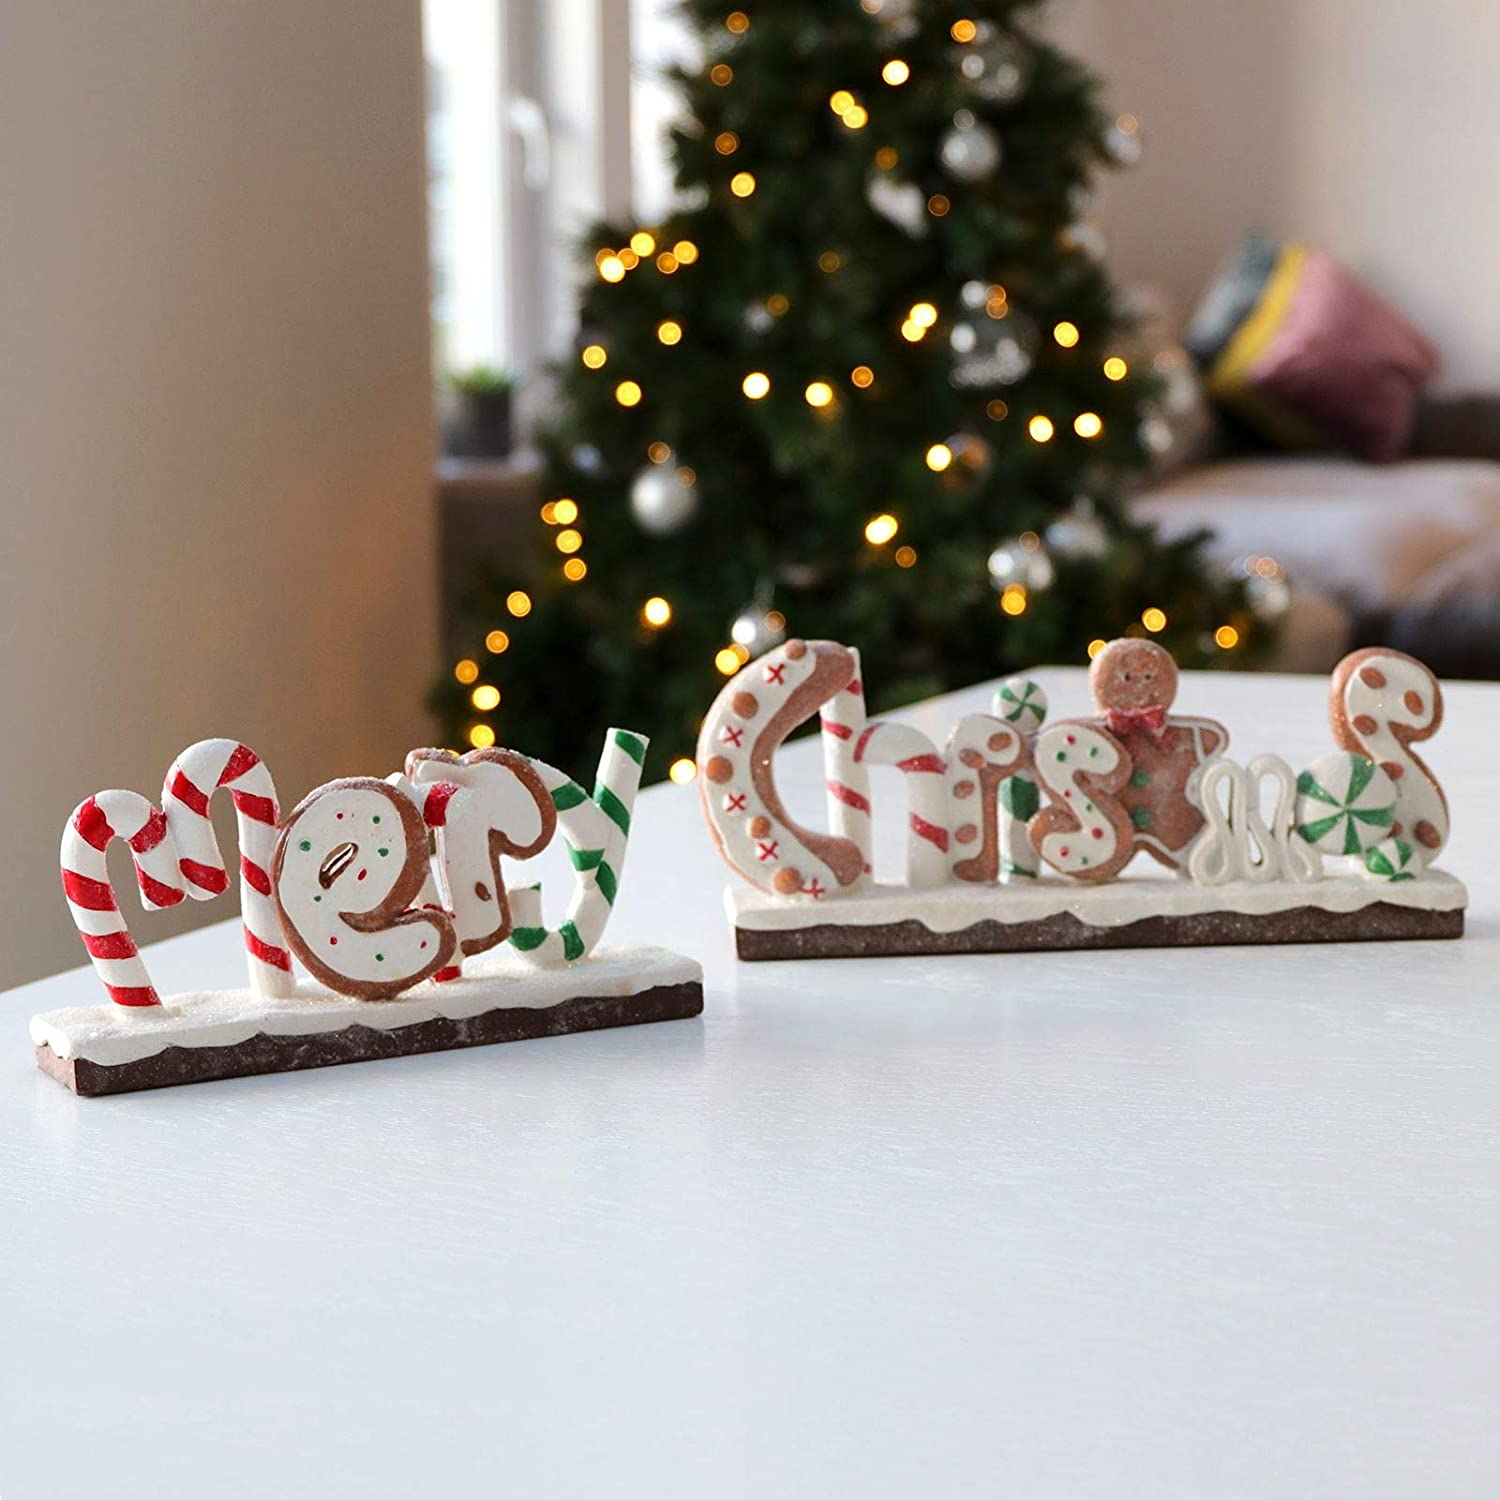 Mr Crimbo Merry Christmas Slogan Sign Decoration 2 Piece Ornament Candy Canes Gingerbread White Red Green Festive Xmas Display 53cm